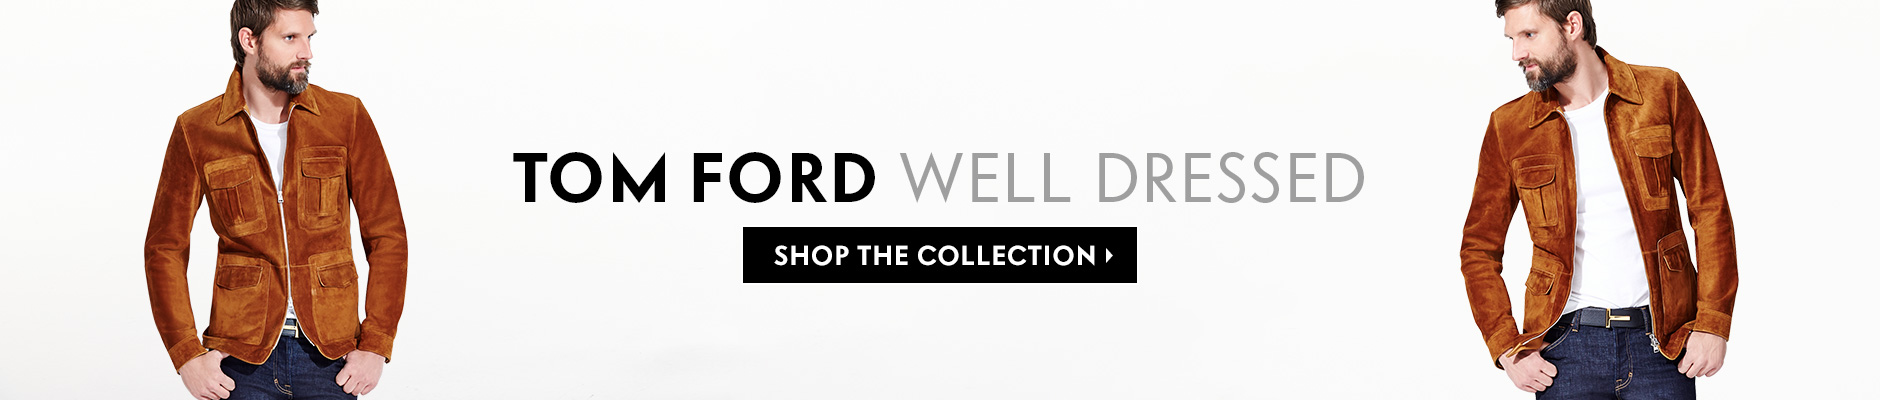 Tom Ford - Well Dressed - Shop the collection